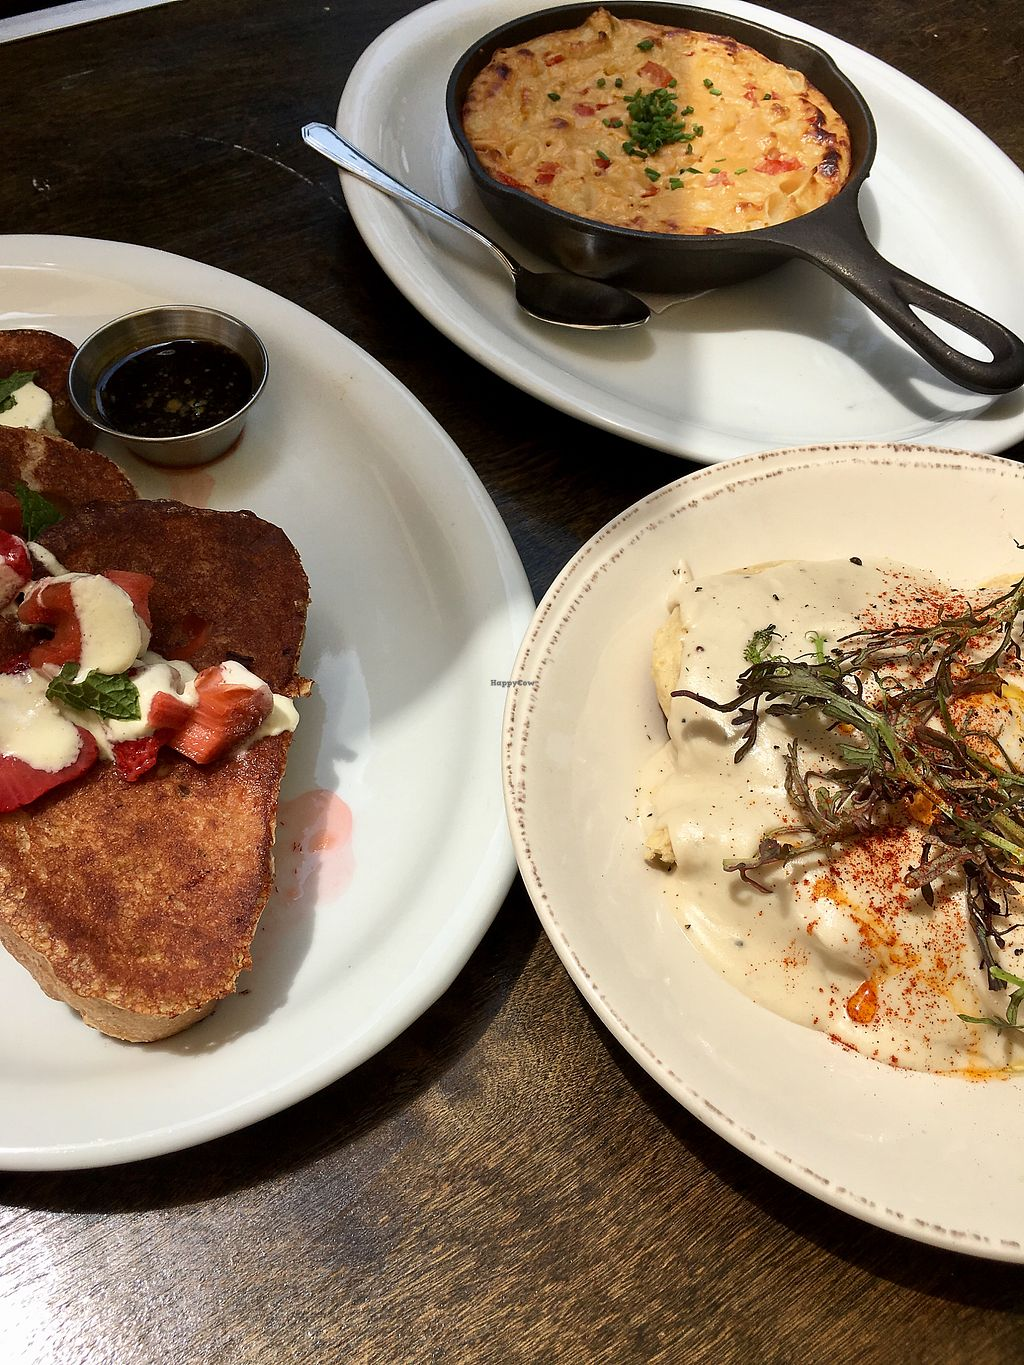 """Photo of Donna Jean  by <a href=""""/members/profile/aaronlee"""">aaronlee</a> <br/>Mac n Cheese, Biscuits and Gravy, French Toast <br/> July 30, 2017  - <a href='/contact/abuse/image/87600/286706'>Report</a>"""